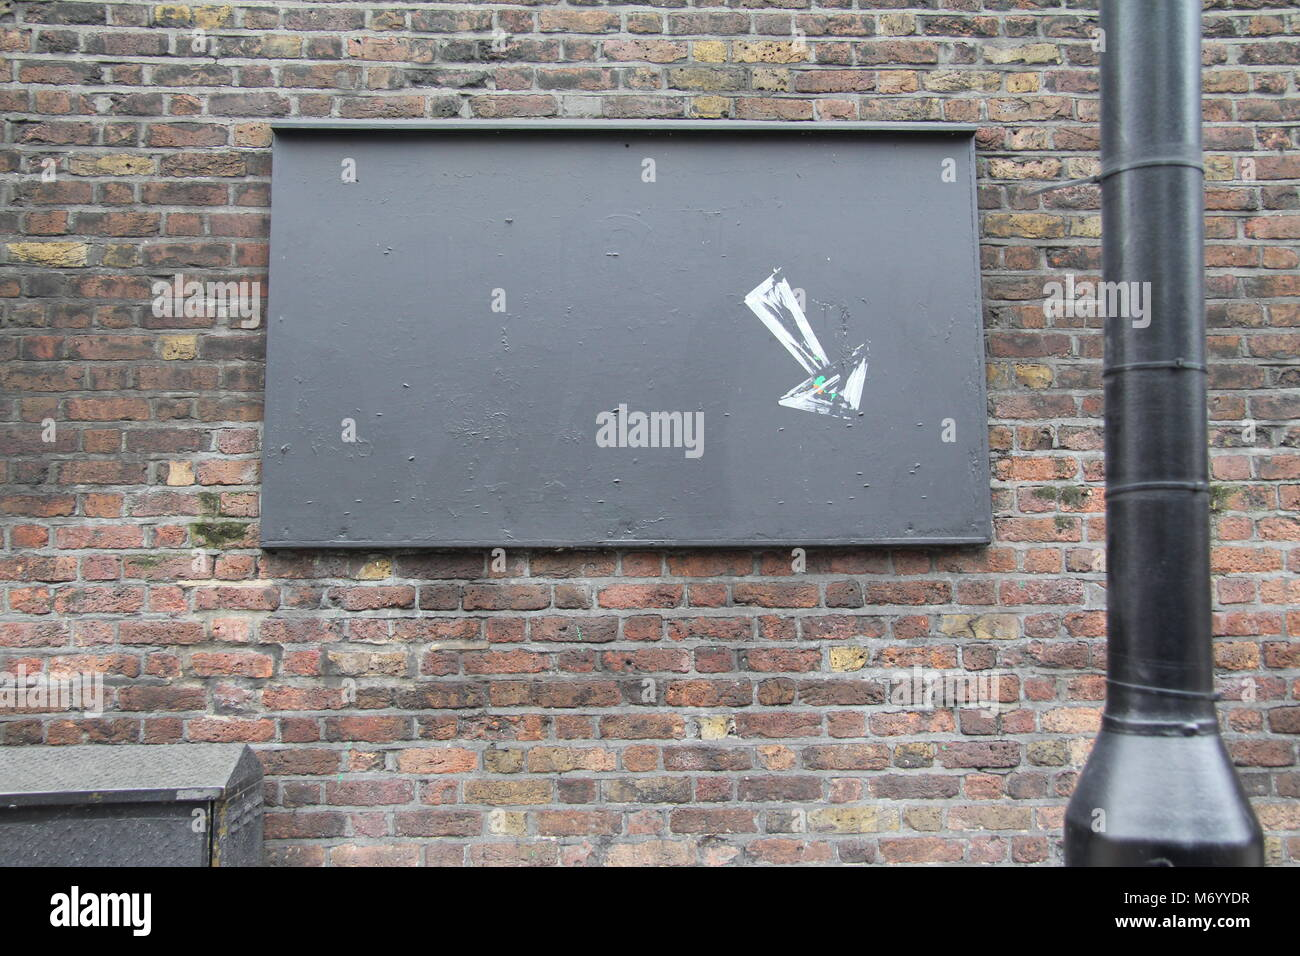 Sign on Brickwork wall in west London, Arrow has been stencilled onto the blank noticeboard - Stock Image